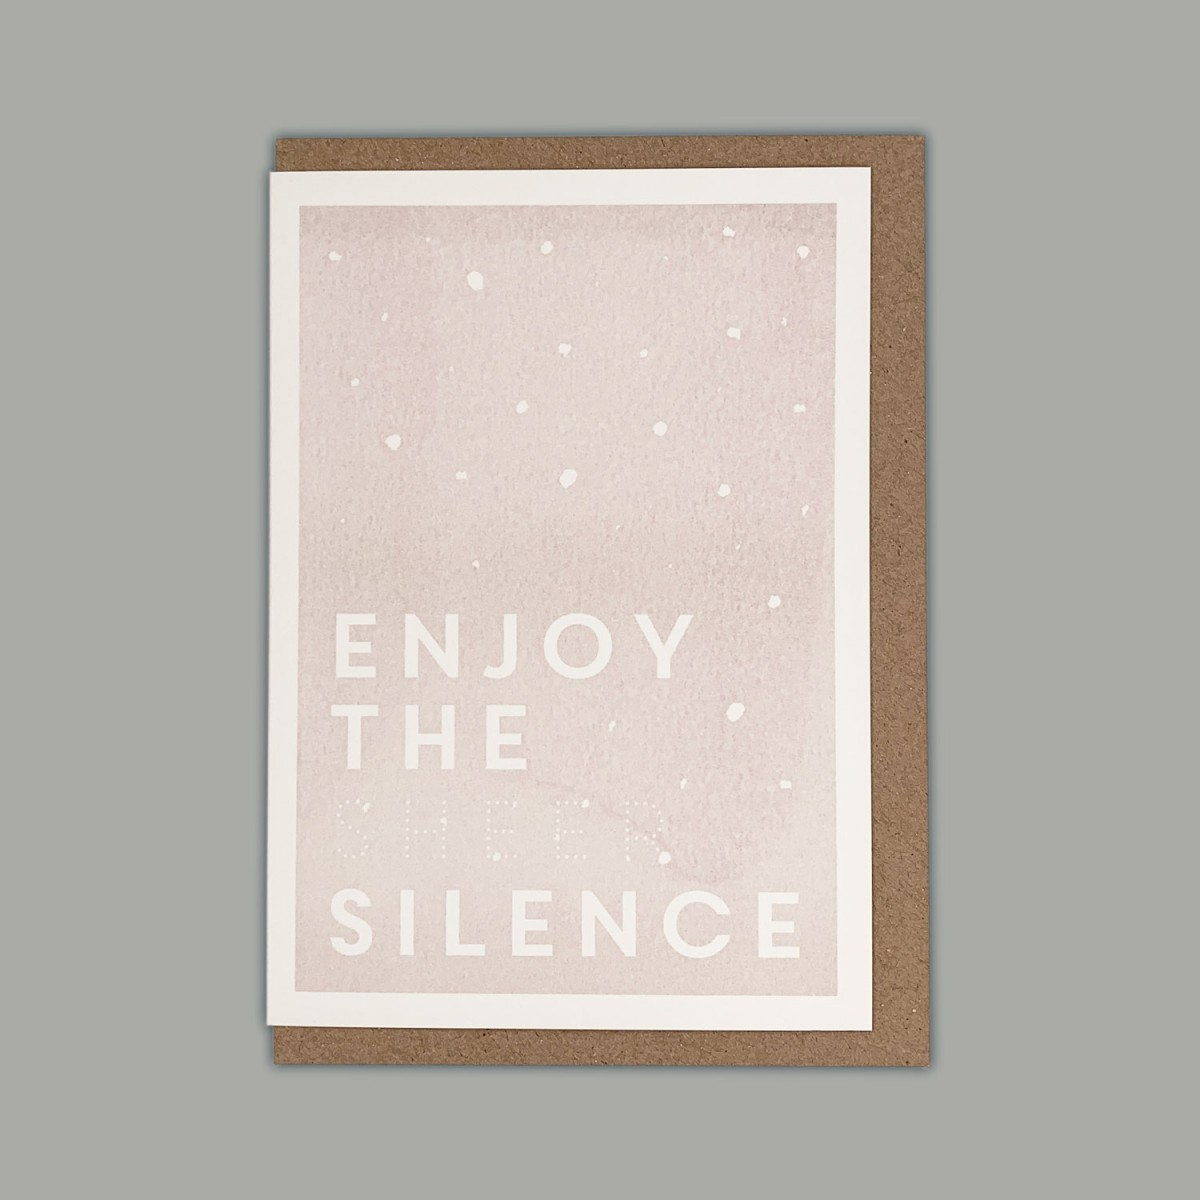 Feingeladen // KARAOKE INSPIRED // Enjoy the sheer Silence (BQ) // RISO-Klappkarte, A6